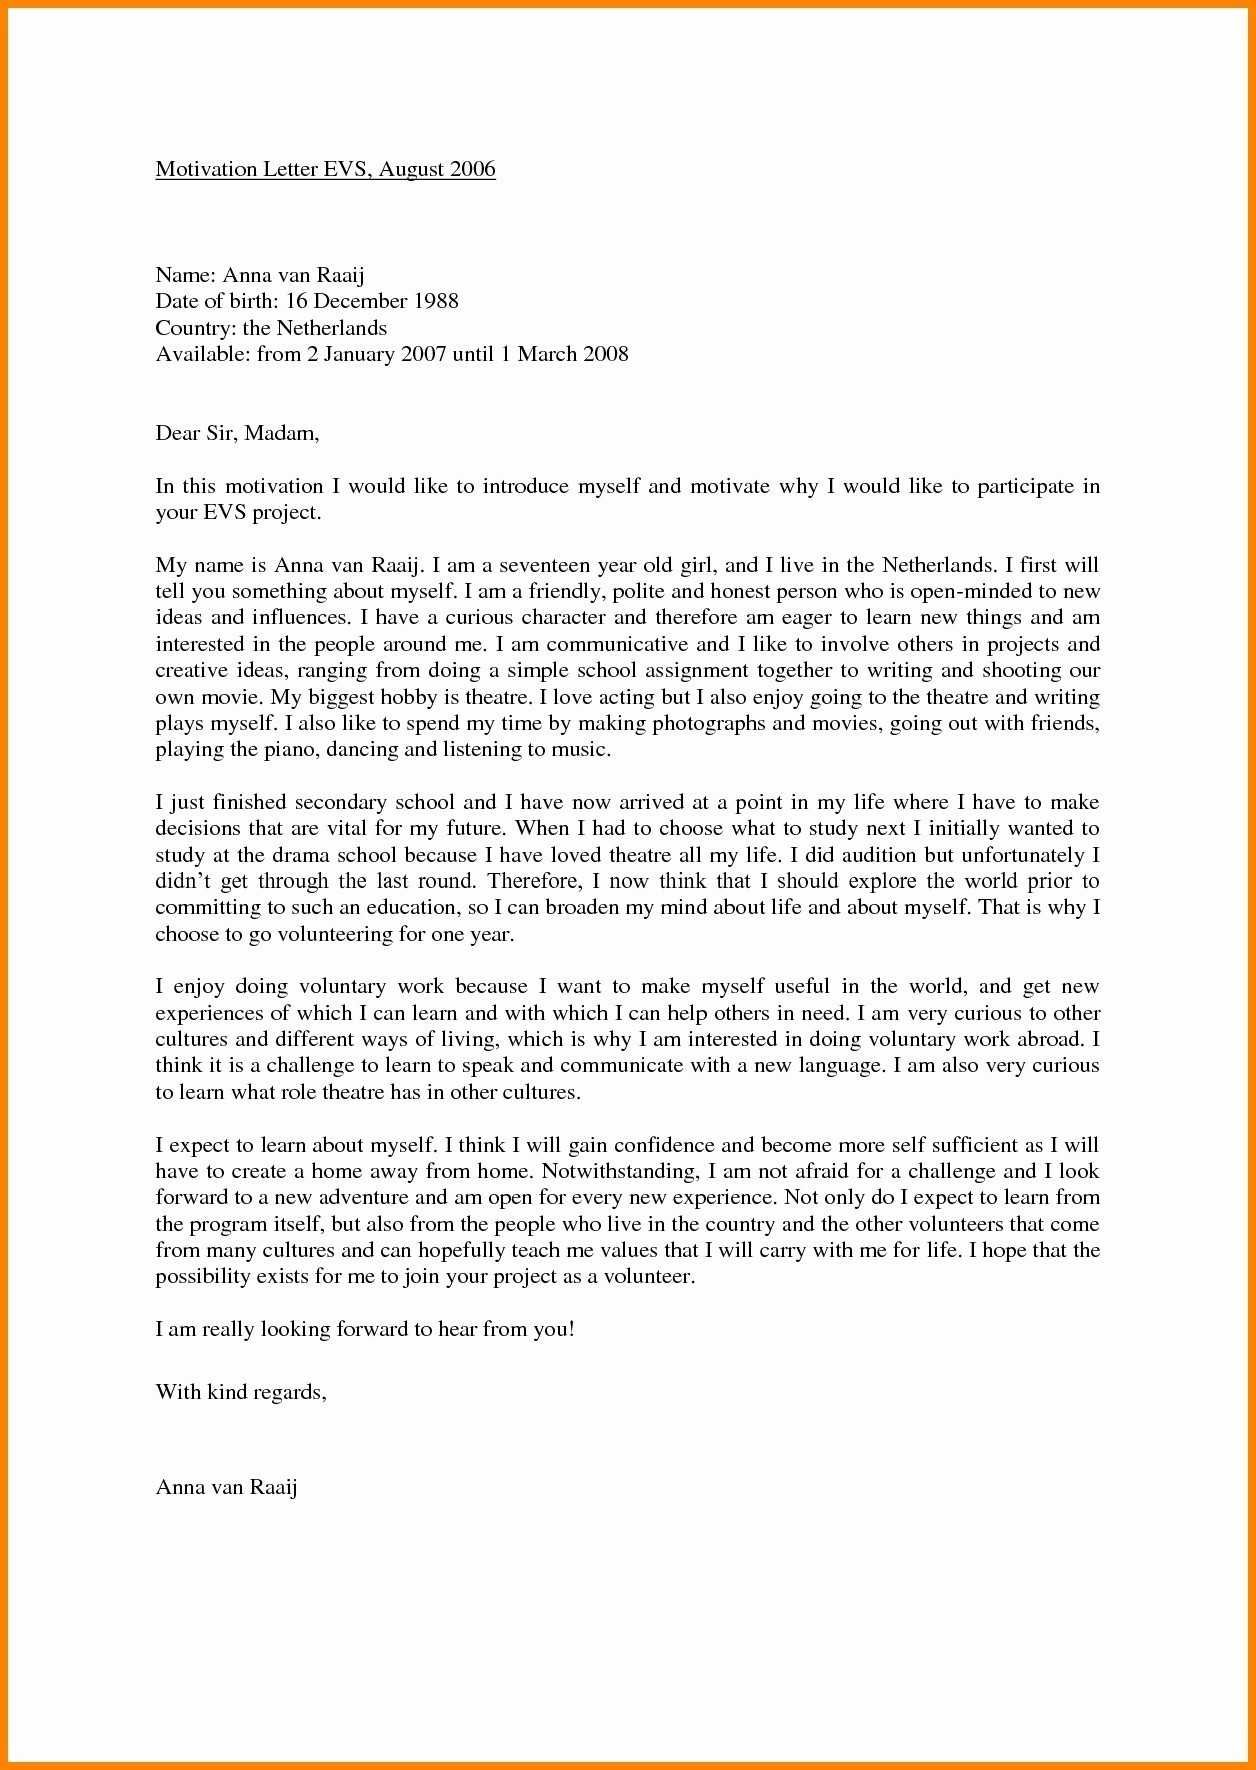 Example Of Motivation Letter Template Motivation Letter Motivation Letter For Job Motivational Letter Job Cover Letter